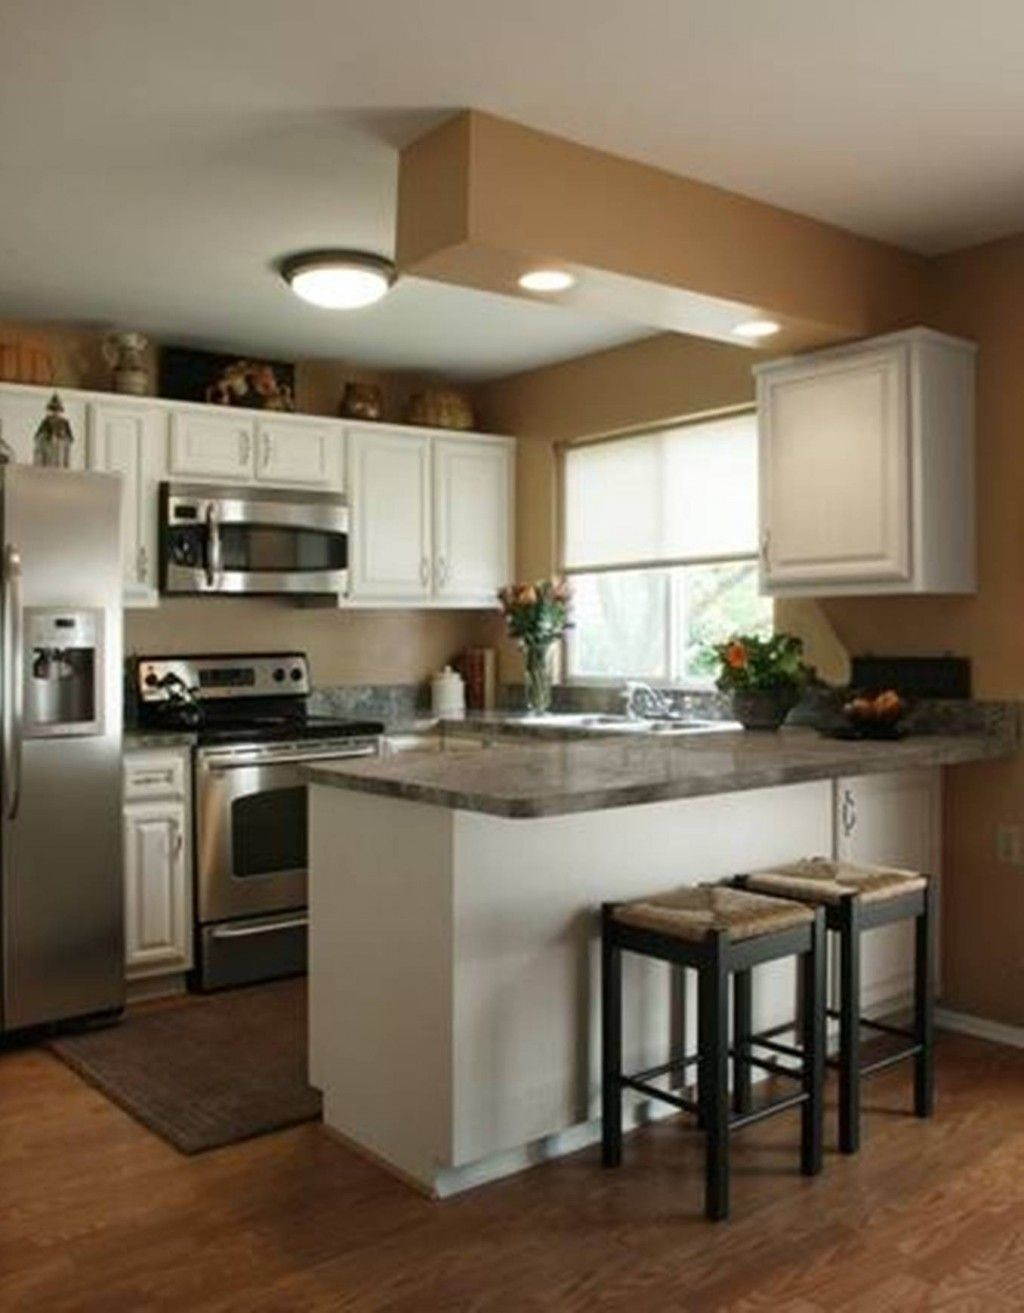 Awesome Small Kitchen Design Ideas Budget Photos ...